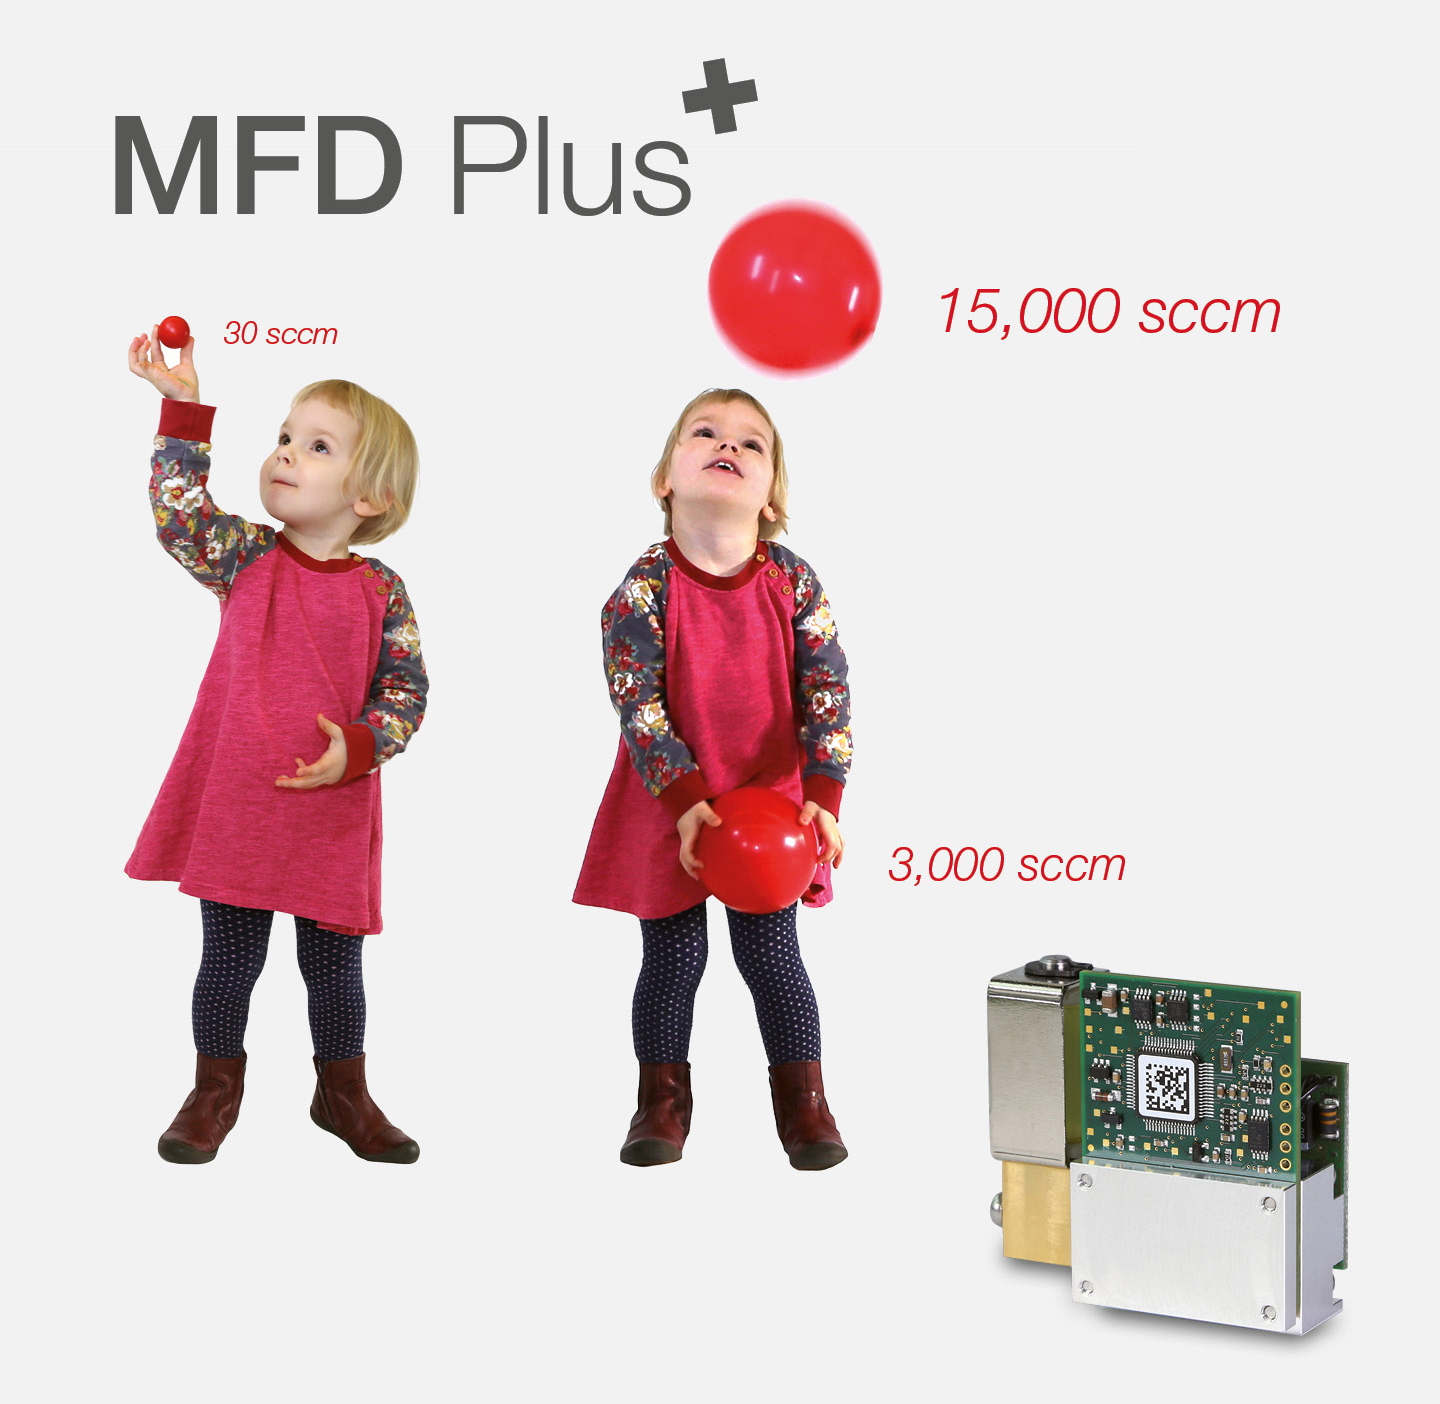 Axetris - MFD Plus new range